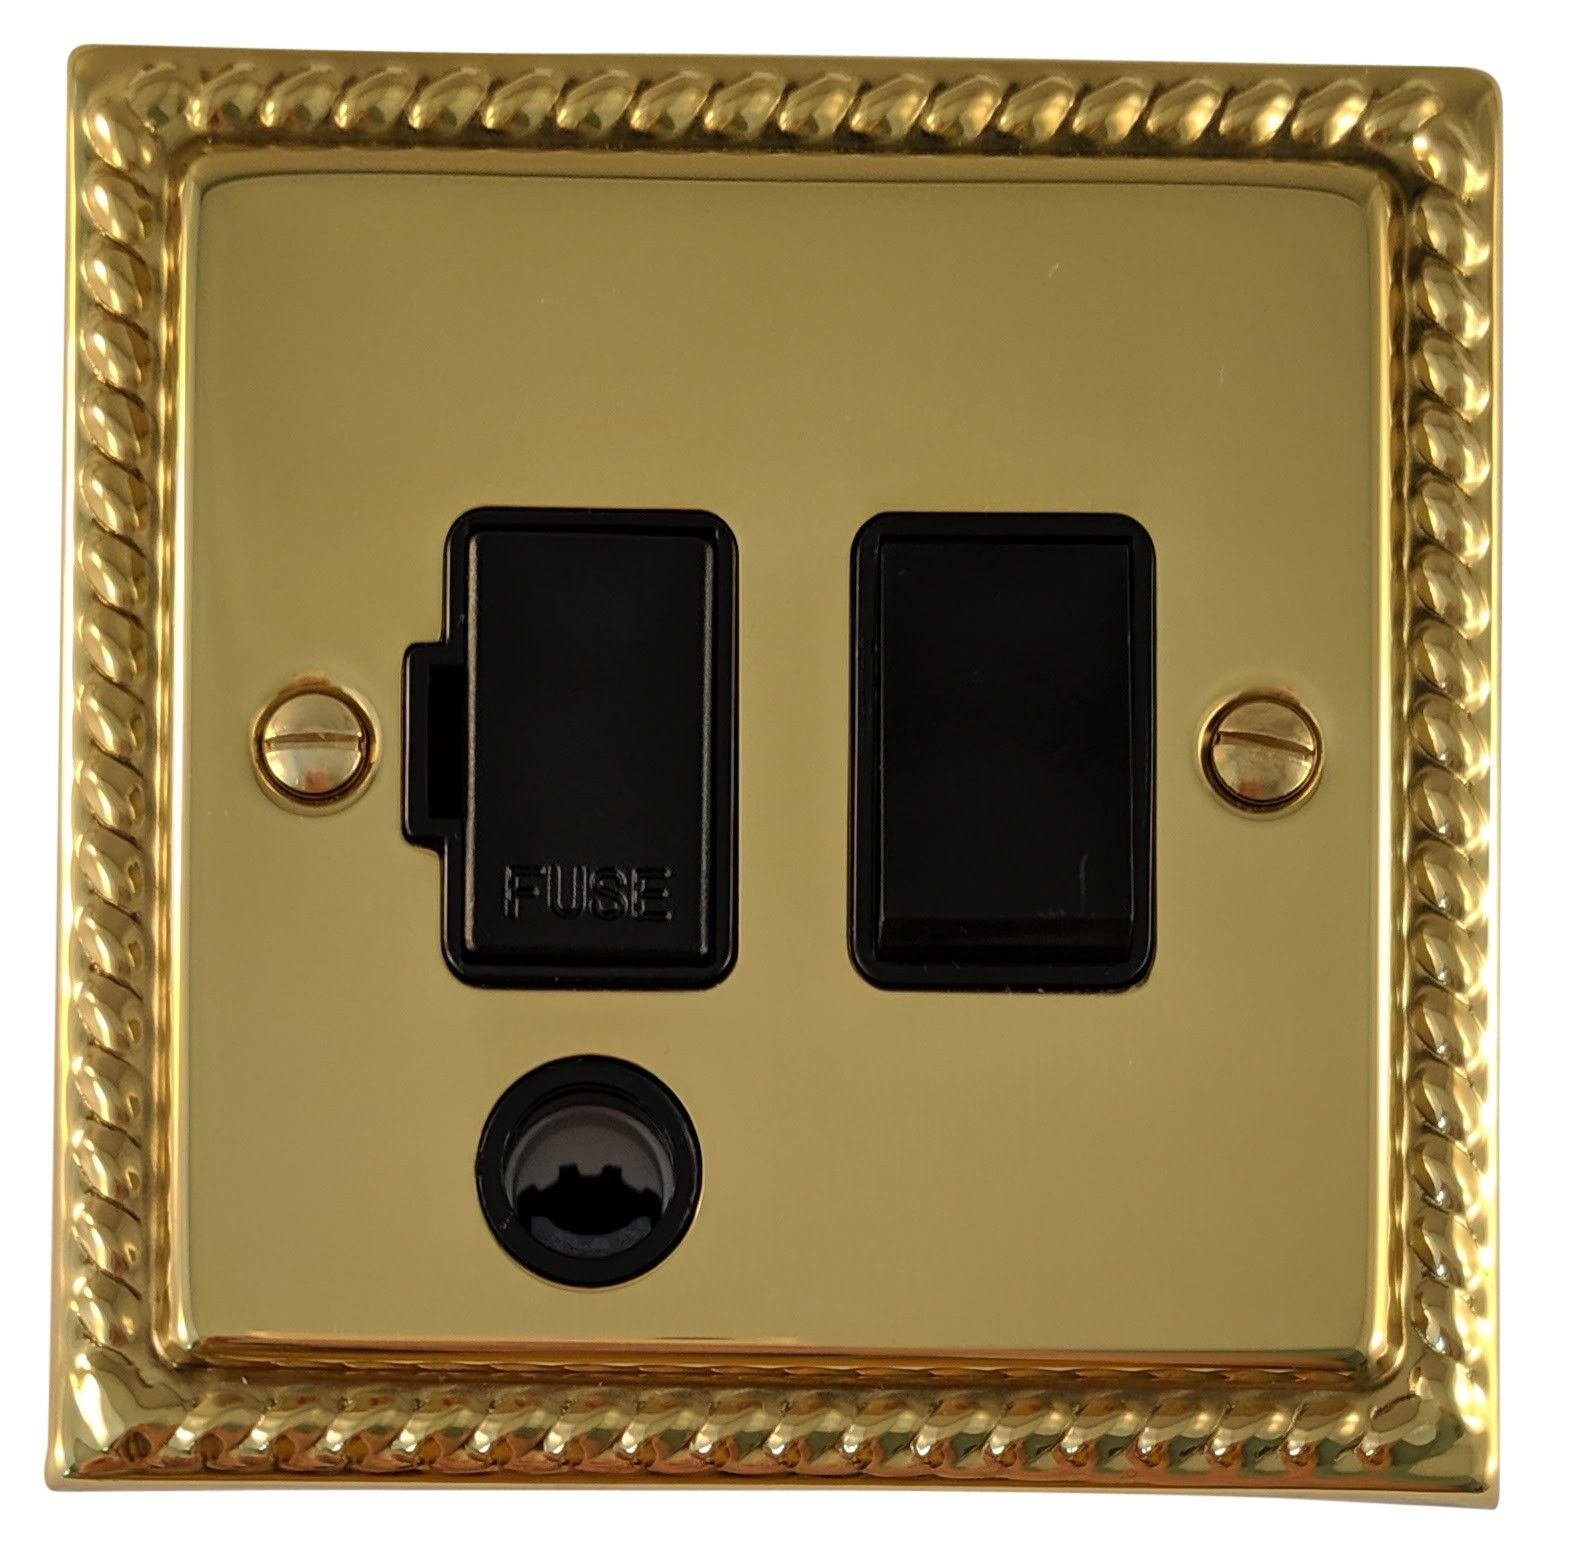 G&H MB56B Monarch Roped Polished Brass 1 Gang Fused Spur 13A Switched & Flex Outlet